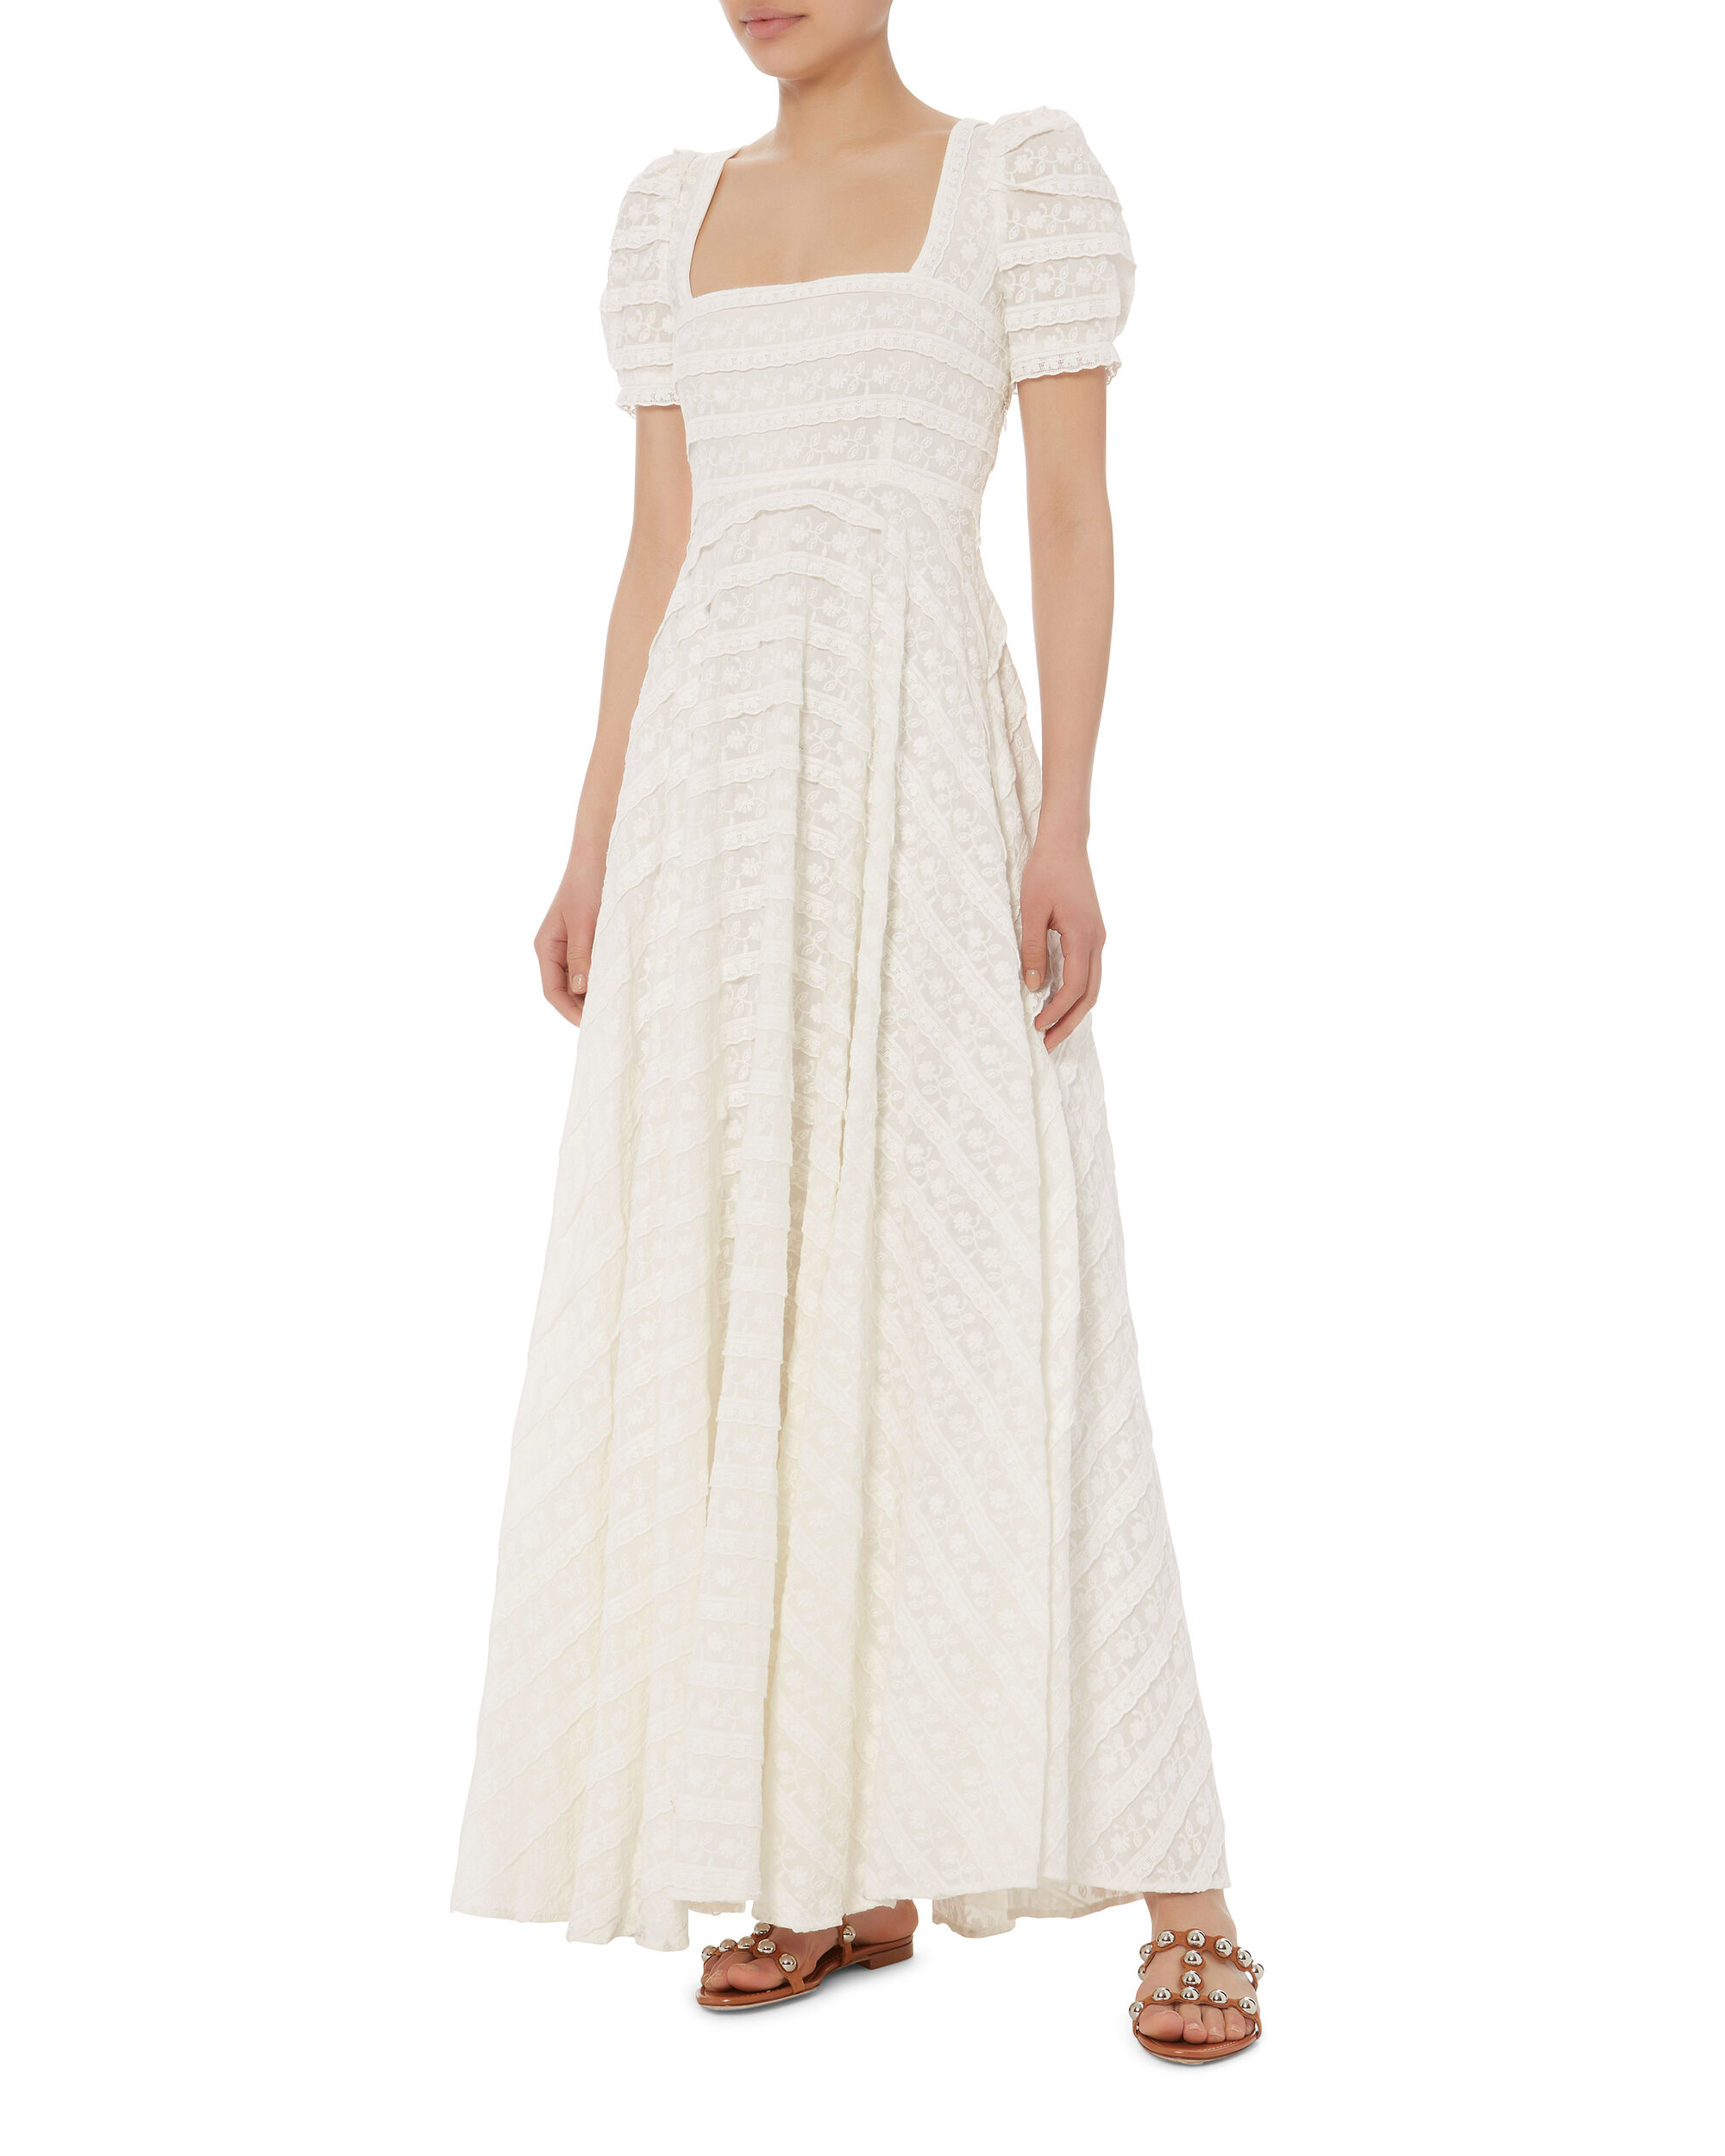 Ryan Maxi Dress, IVORY, hi-res